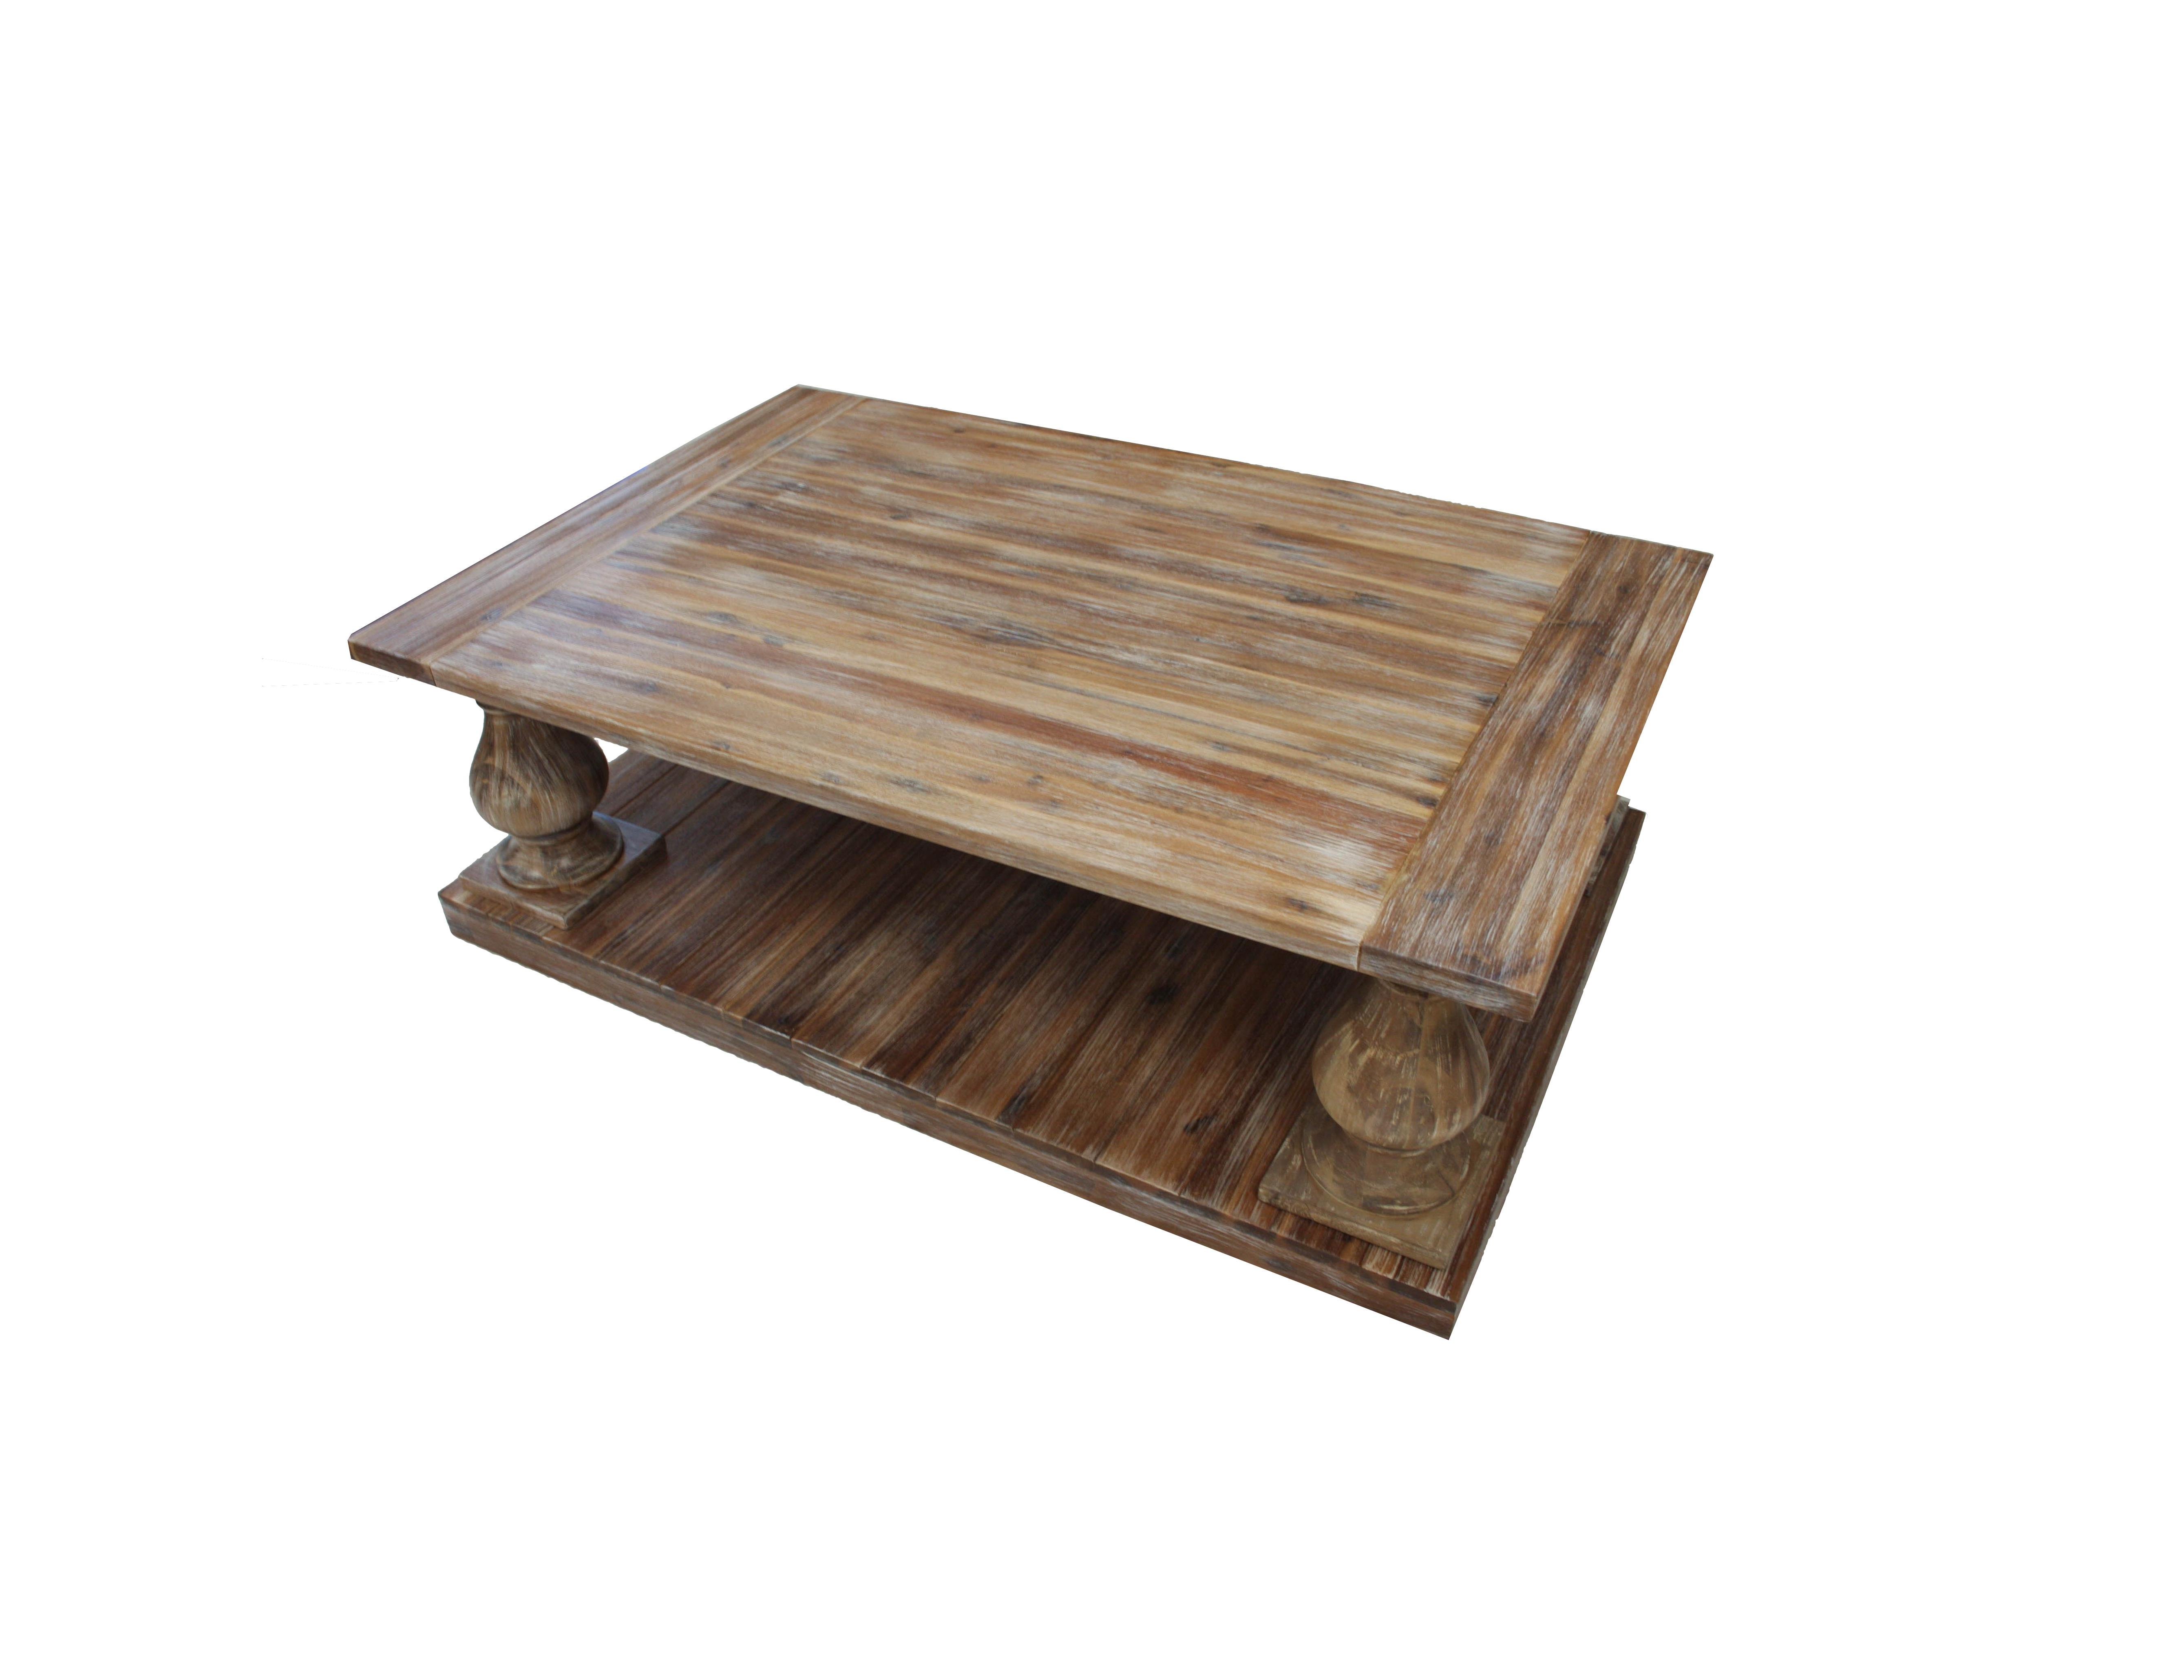 Rustic Double Decker Whitewash Coffee Table. Natural Wood